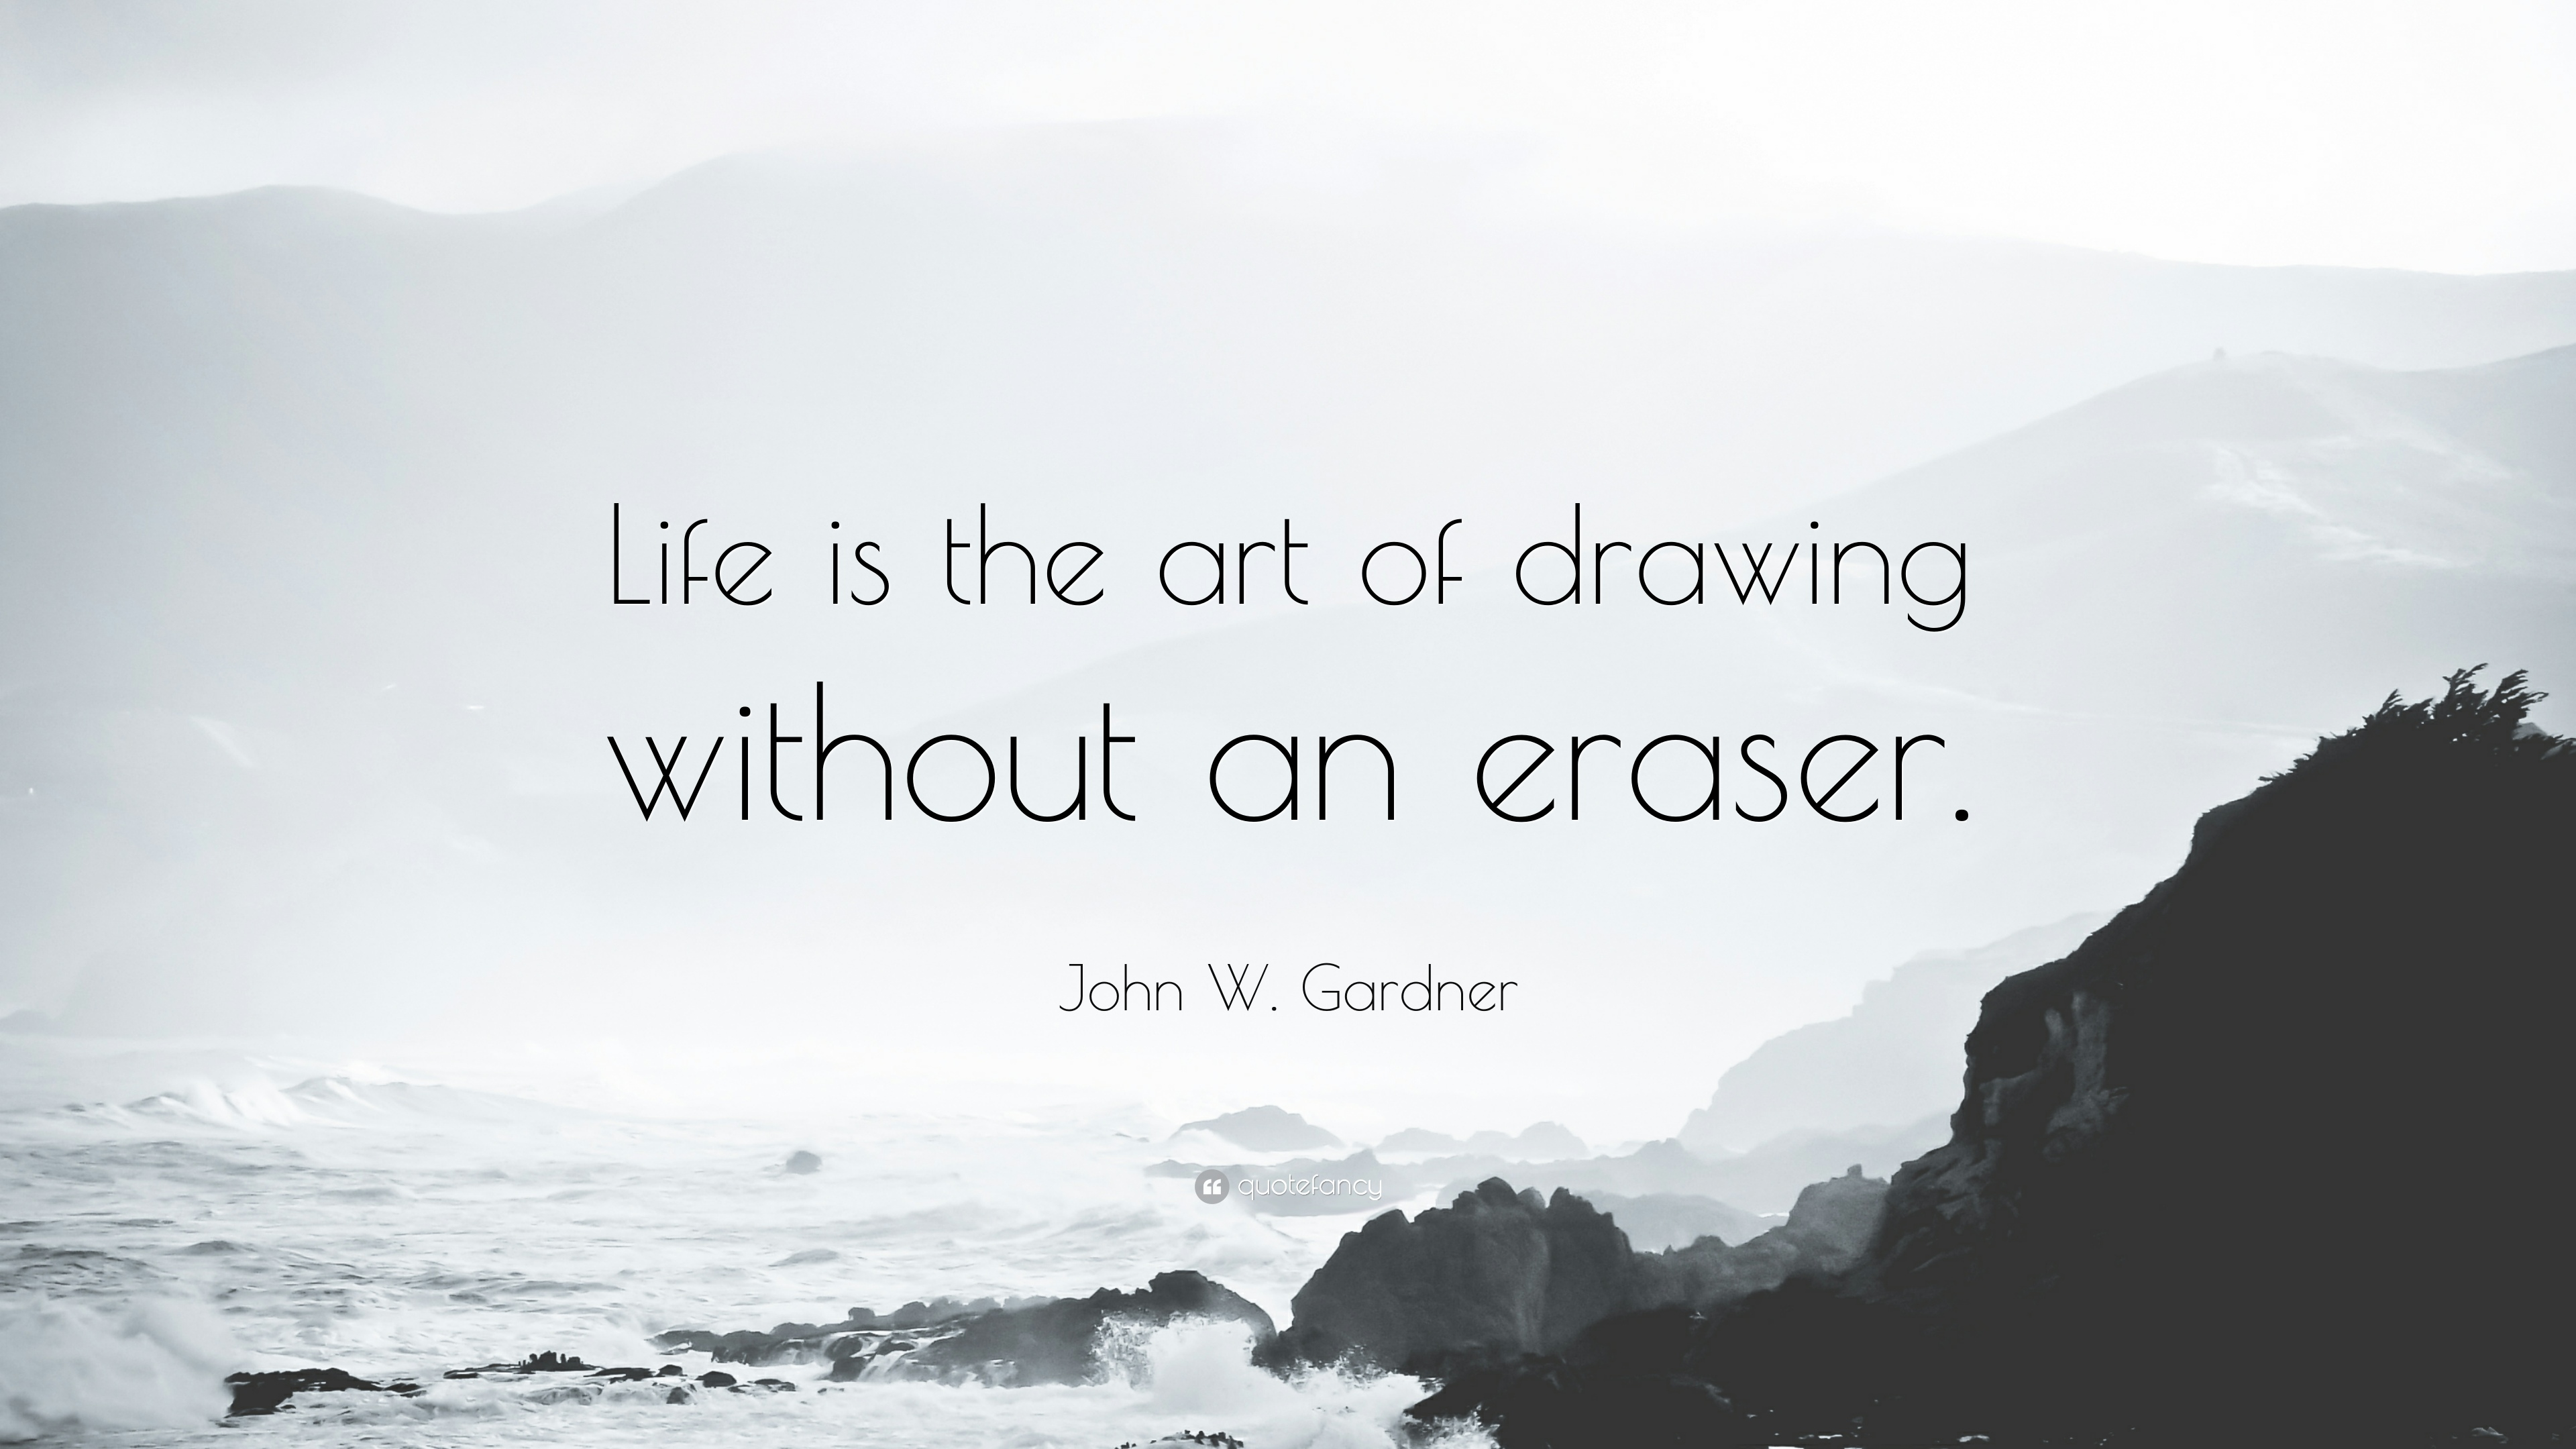 [Image] Life is the art of drawing without eraser. John W Gardner (So draw wisely)